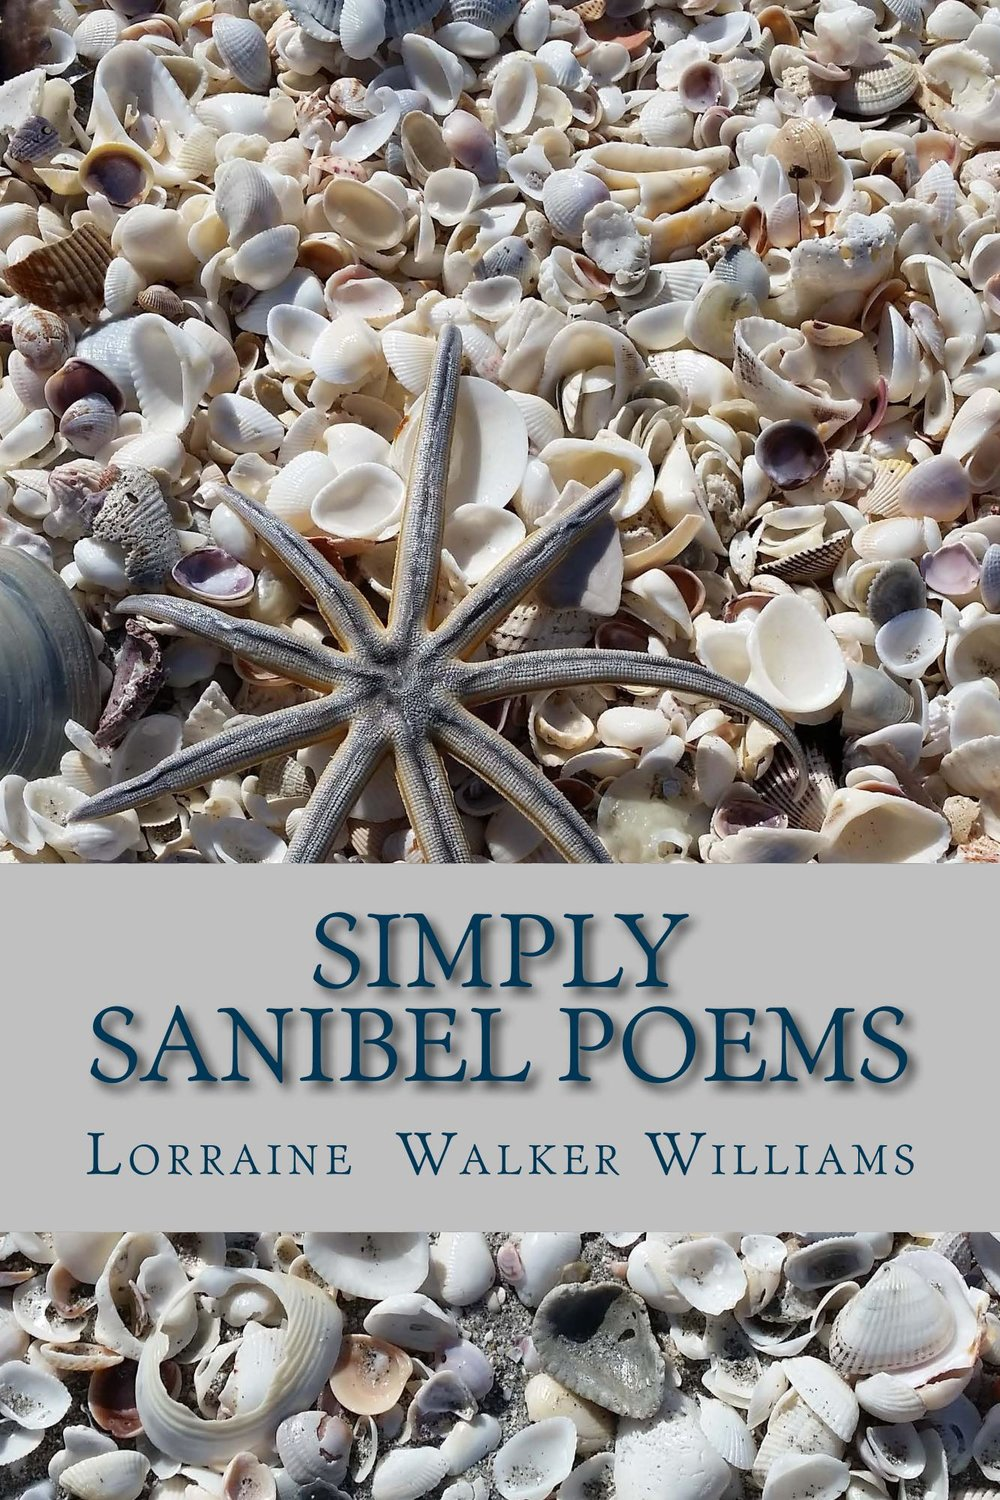 Simply Sanibel Poems (1).jpg